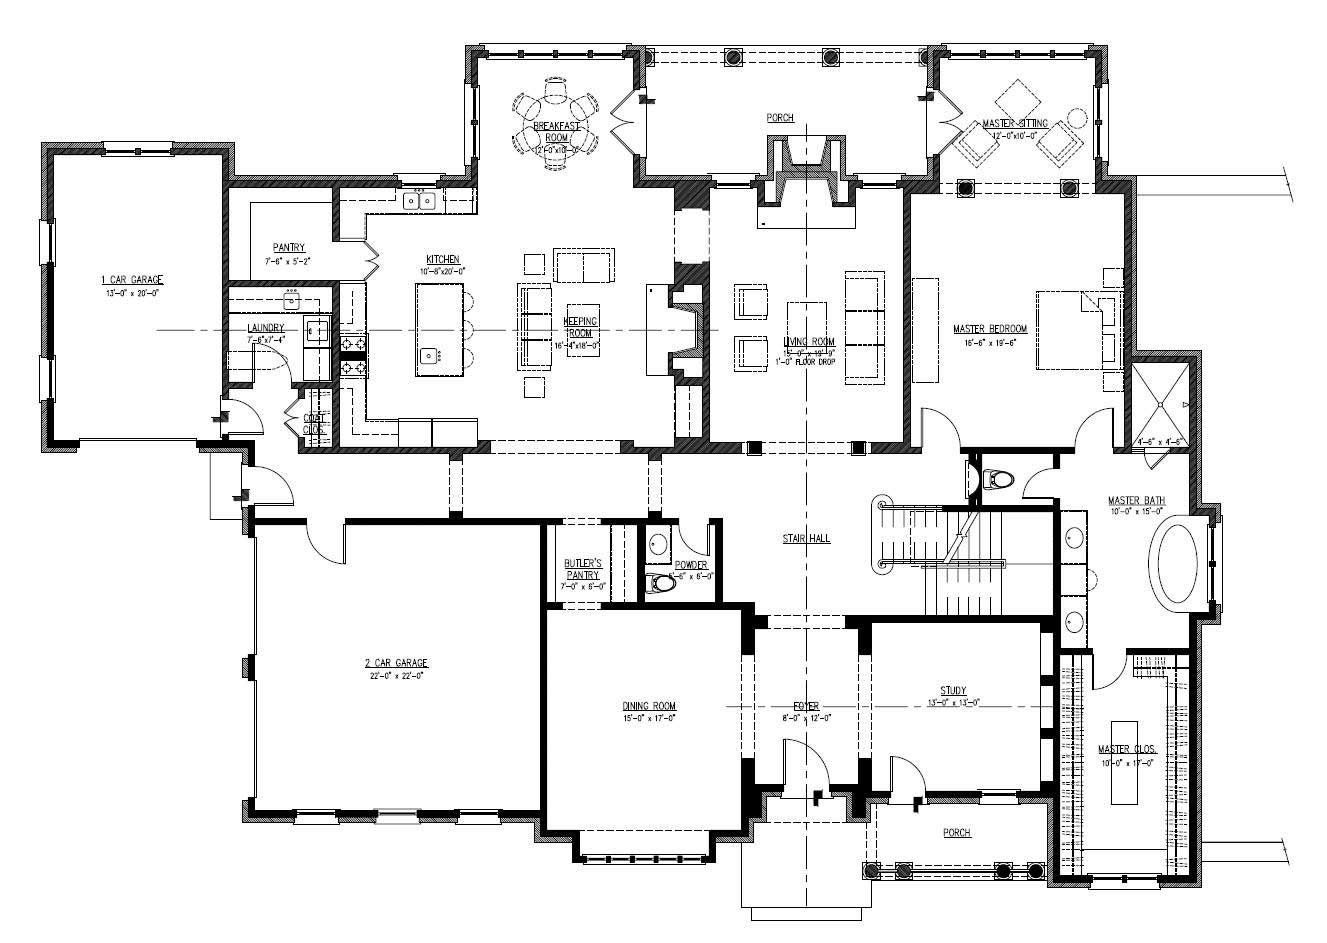 97+ 1 Story Home Design Plans - Contemporary One Story House Plans ...